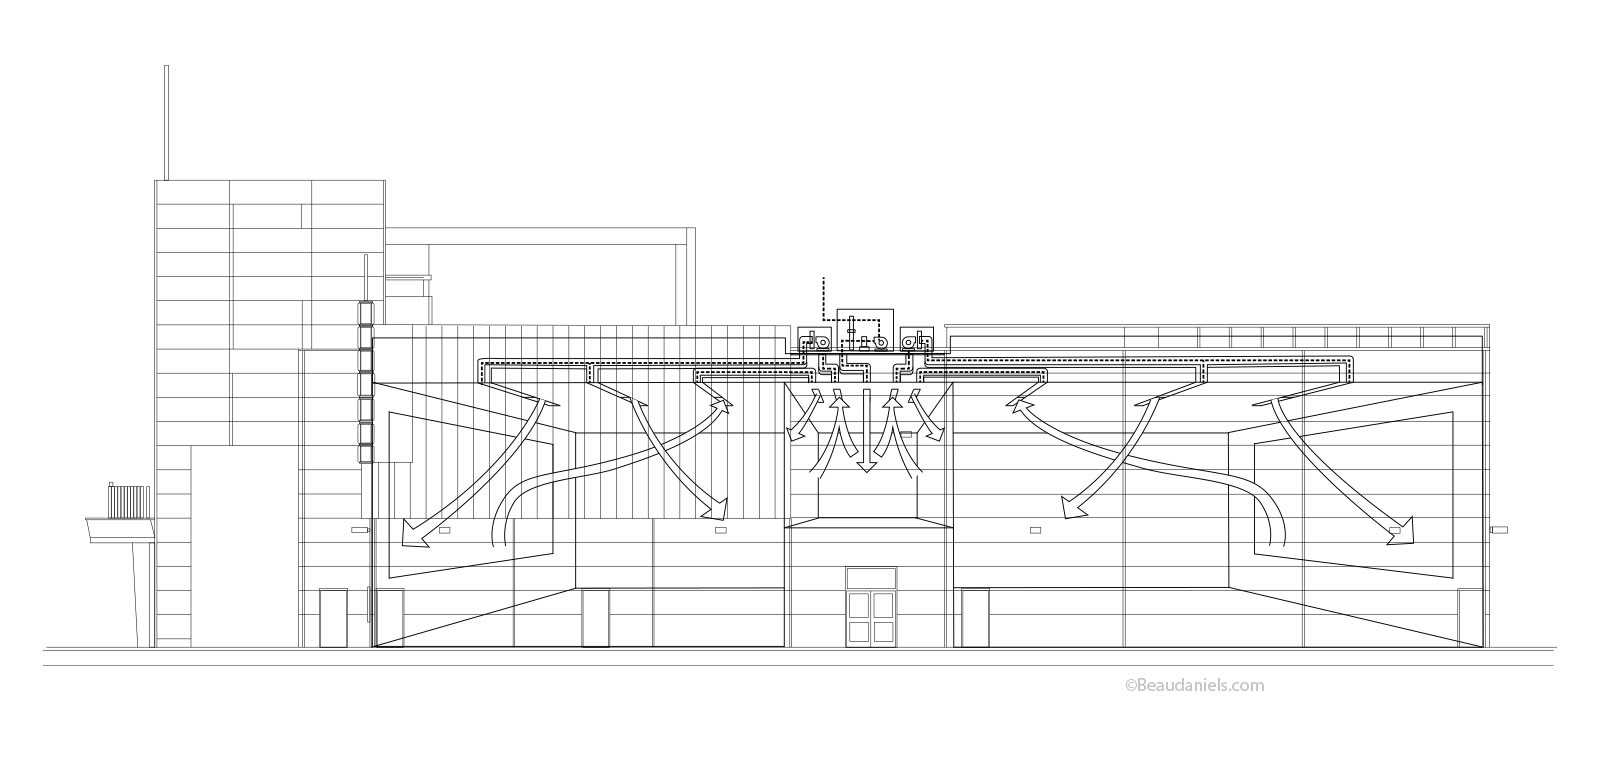 Technical Illustration Beau And Alan Daniels Hvac Animation Drawing Company Air Flow In A Typical Cinema